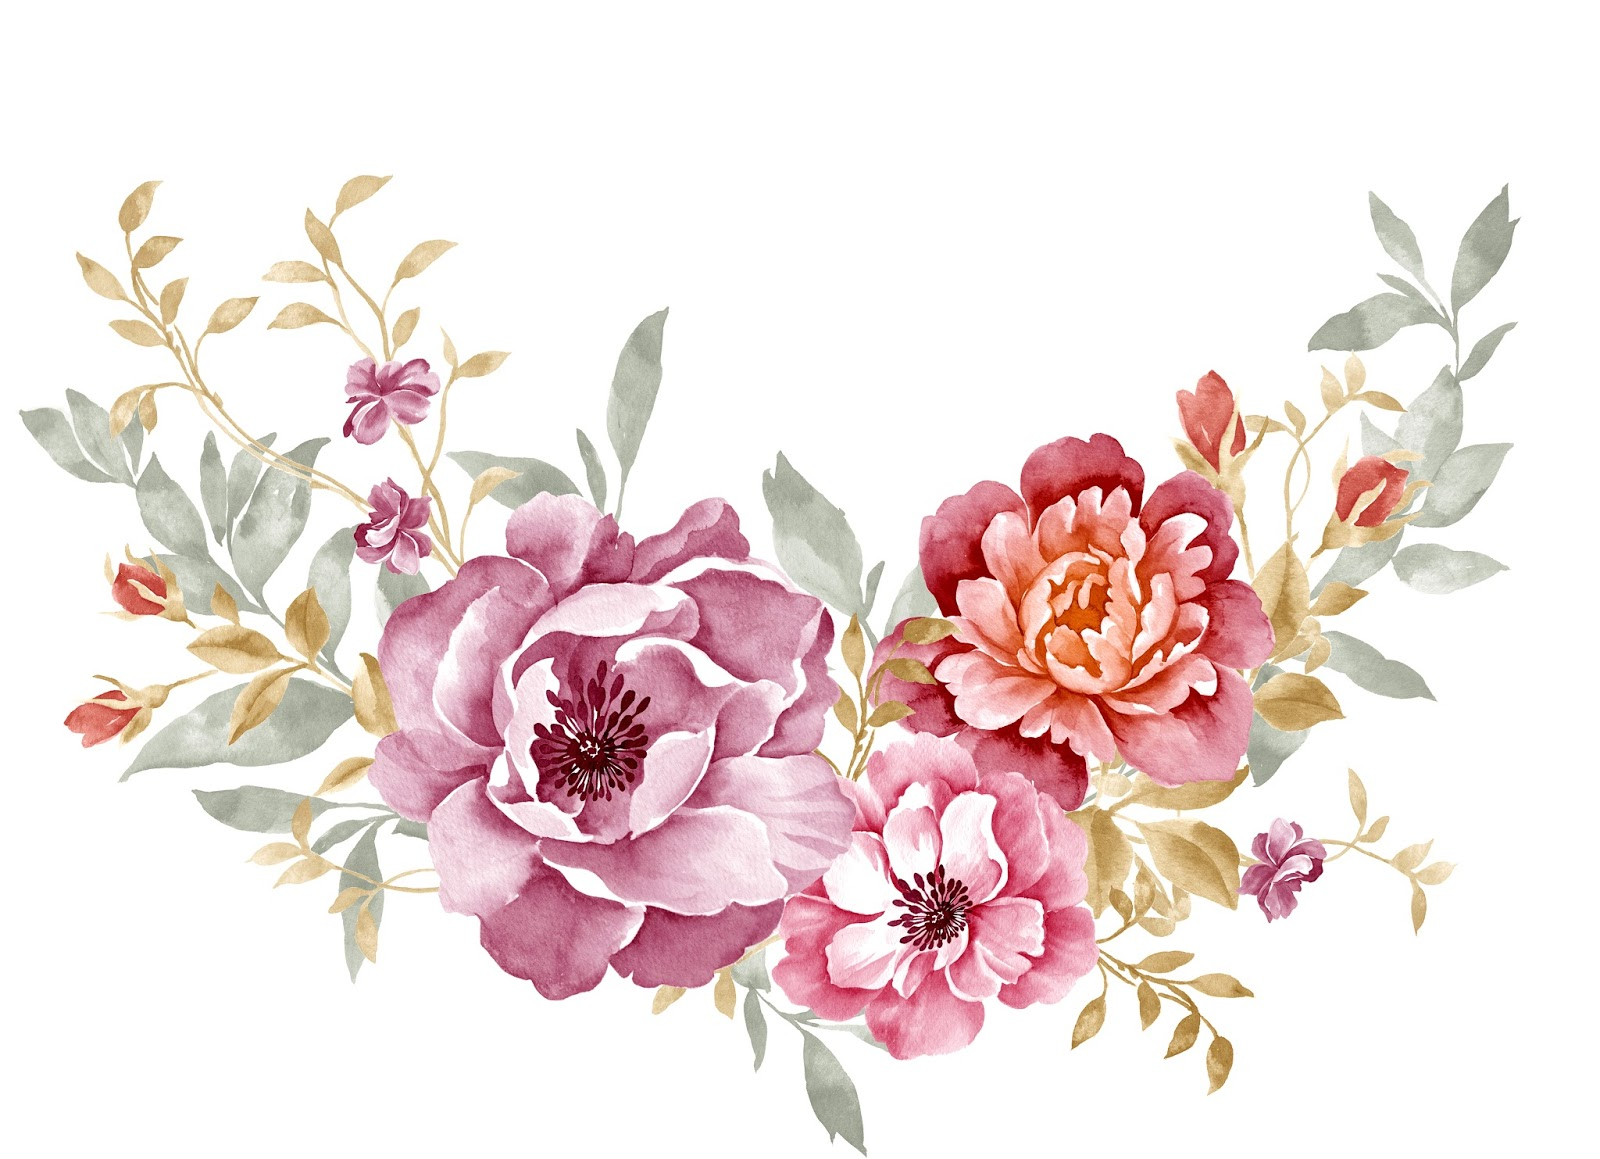 Watercolour Bouquet Of Var Ous Flower Blisse Design Studio